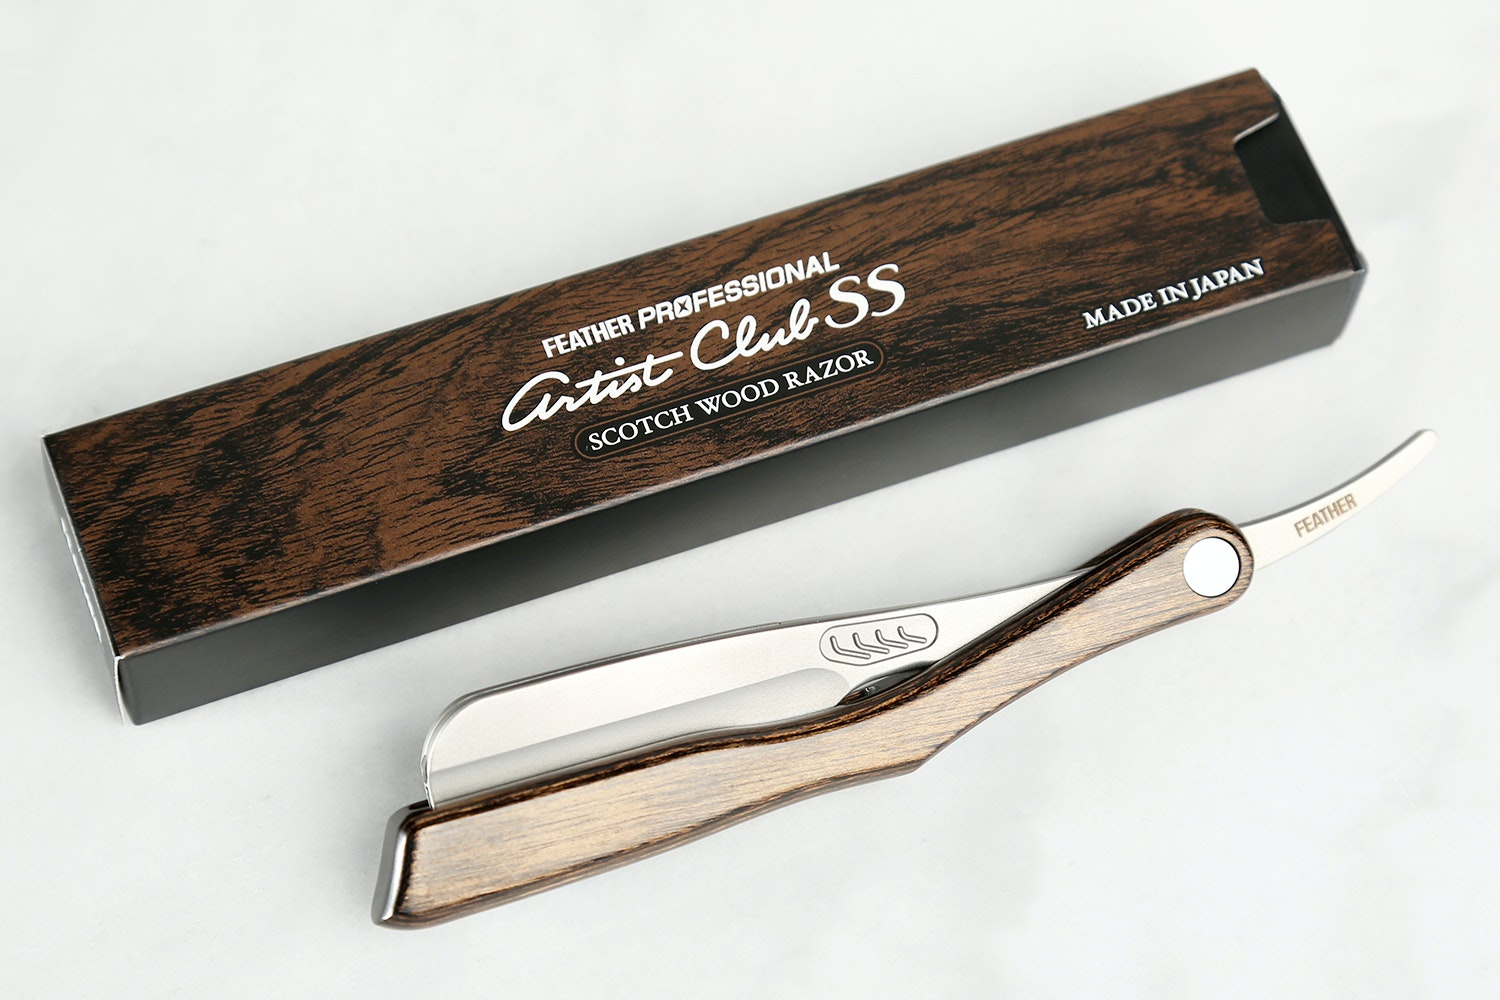 Feather Wood Artist Club Shaving Razor